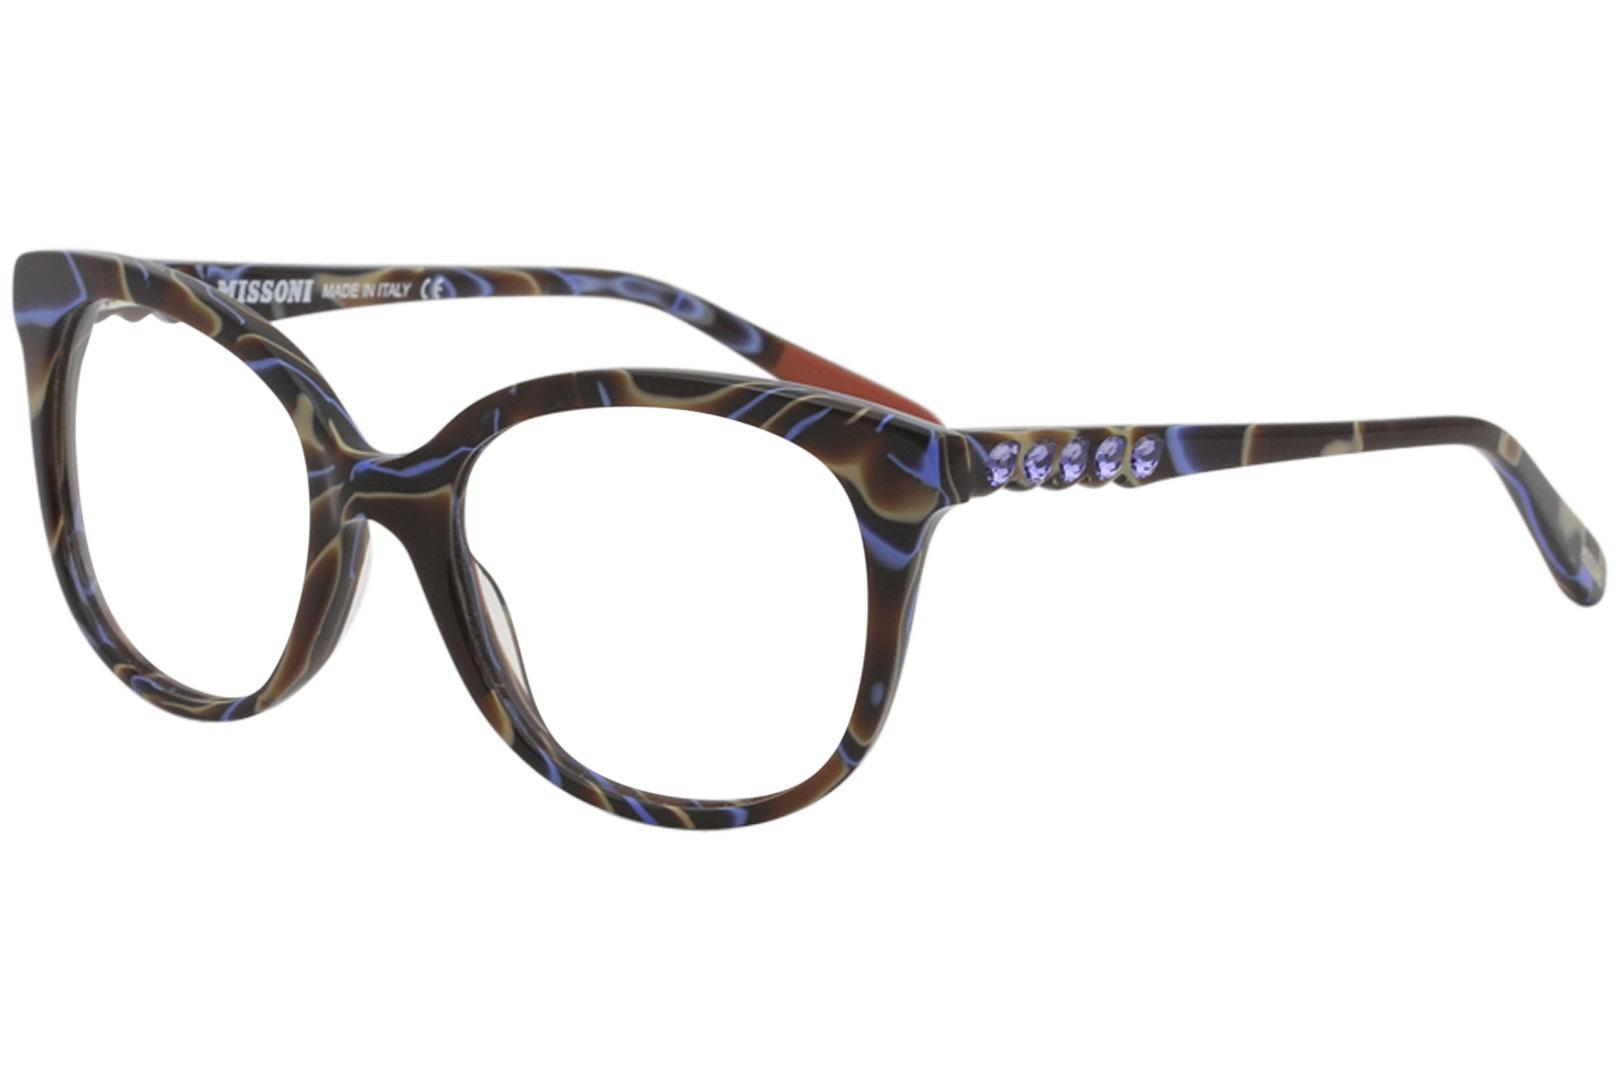 Image of Missoni Women's Eyeglasses MI313V MI/313/V Full Rim Optical Frame - Brown W/Crystal Accents   03 -  Lens 53 Bridge 19 Temple 140mm